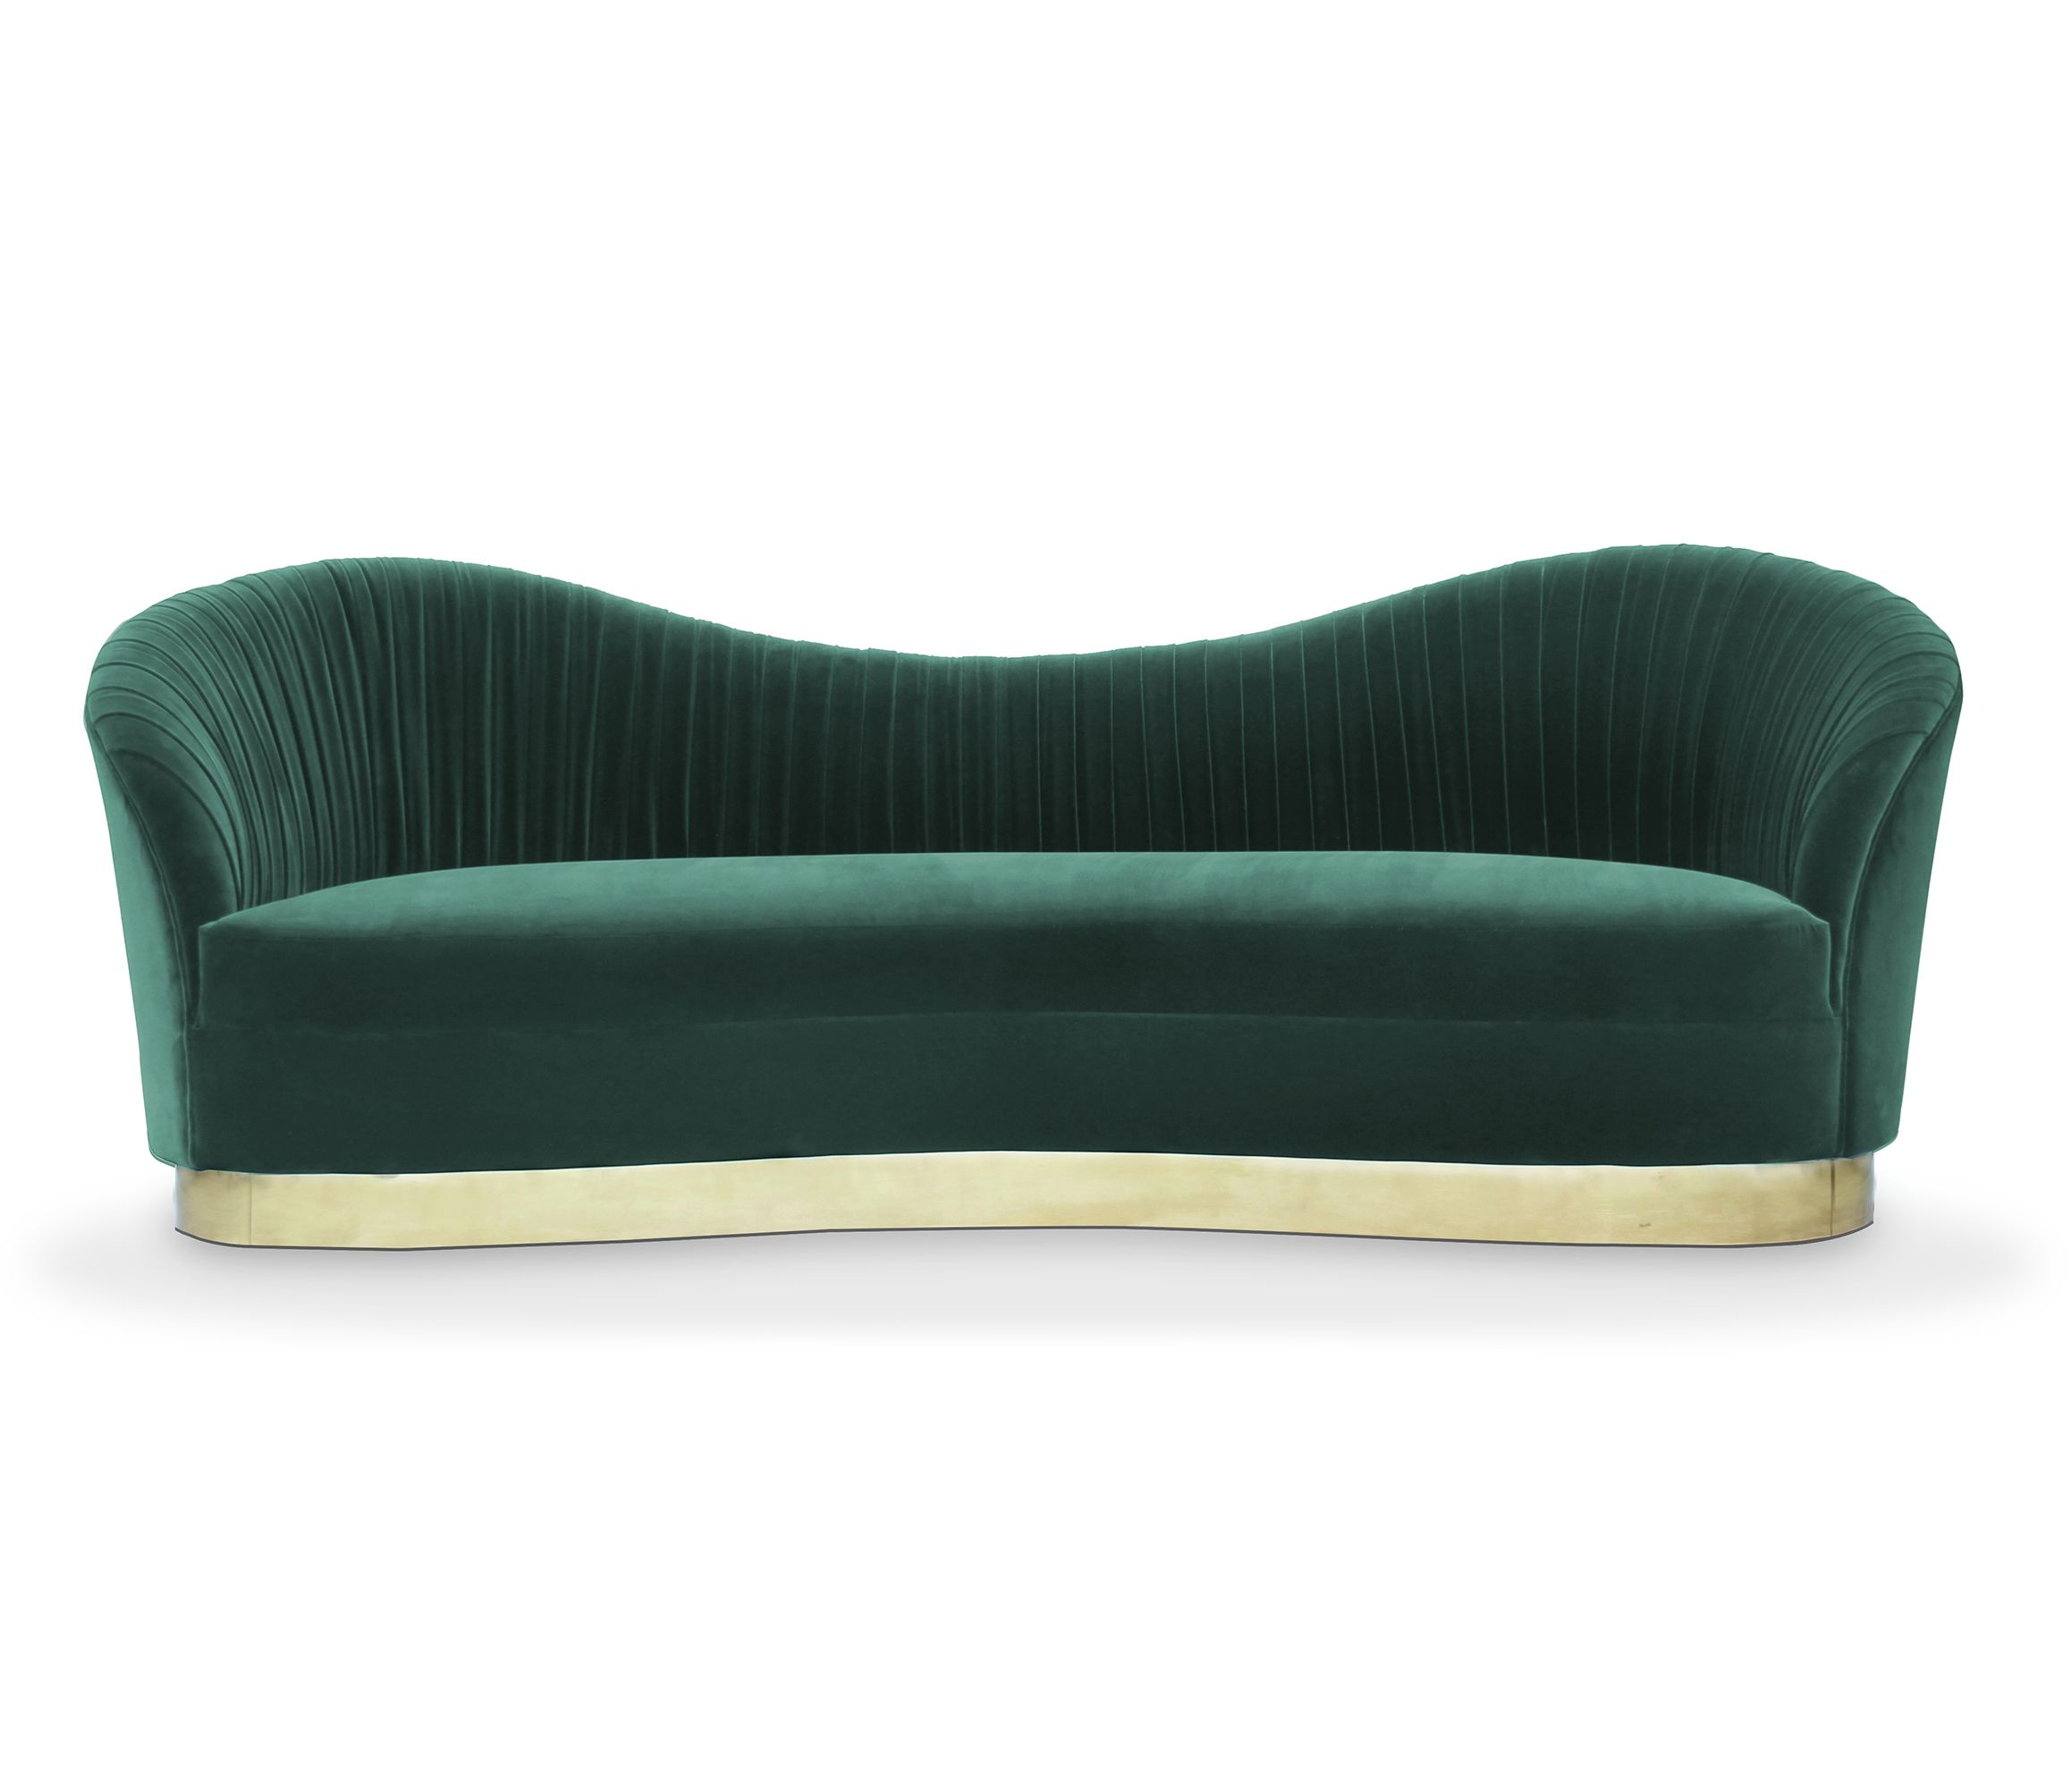 264 Best Sofas, Chaises And Day Beds  Koket Images